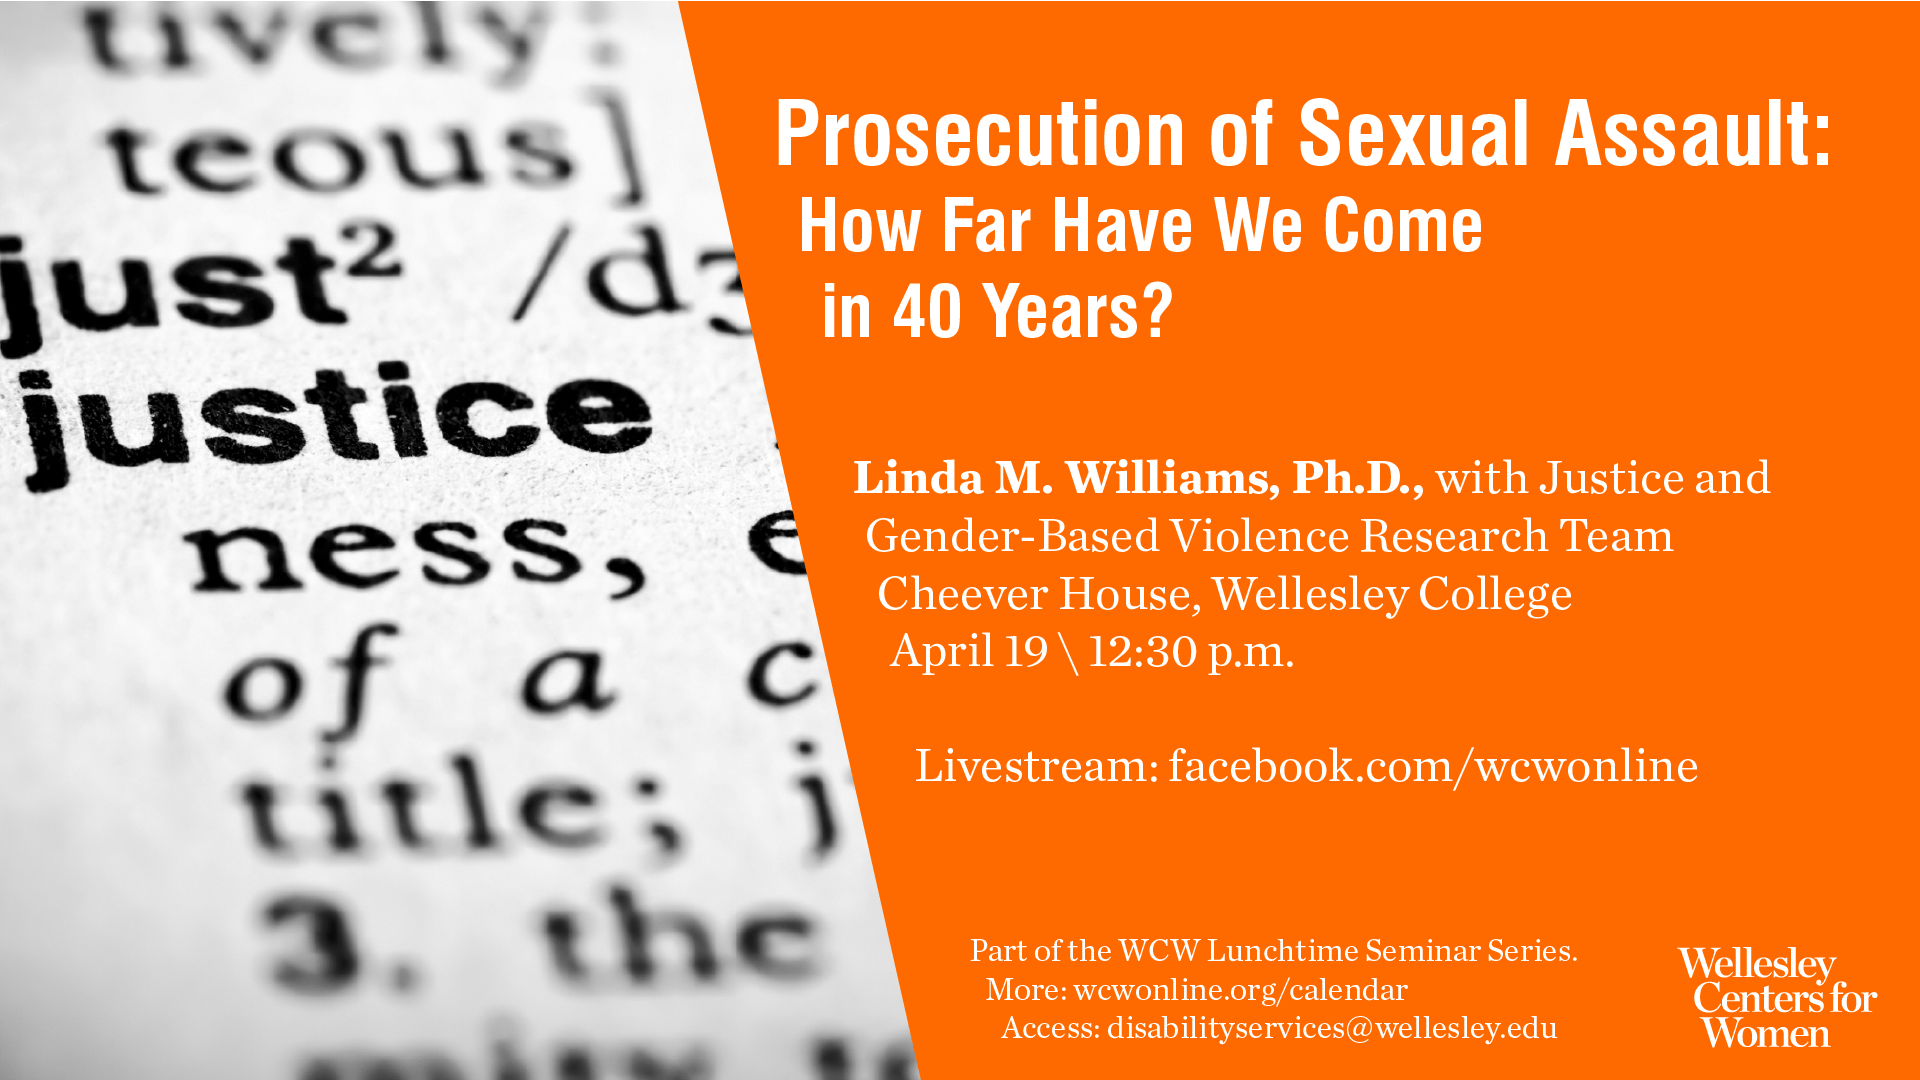 flyer for April 19 lunchtime seminar on prosecution of sexual assault changes over 40 years